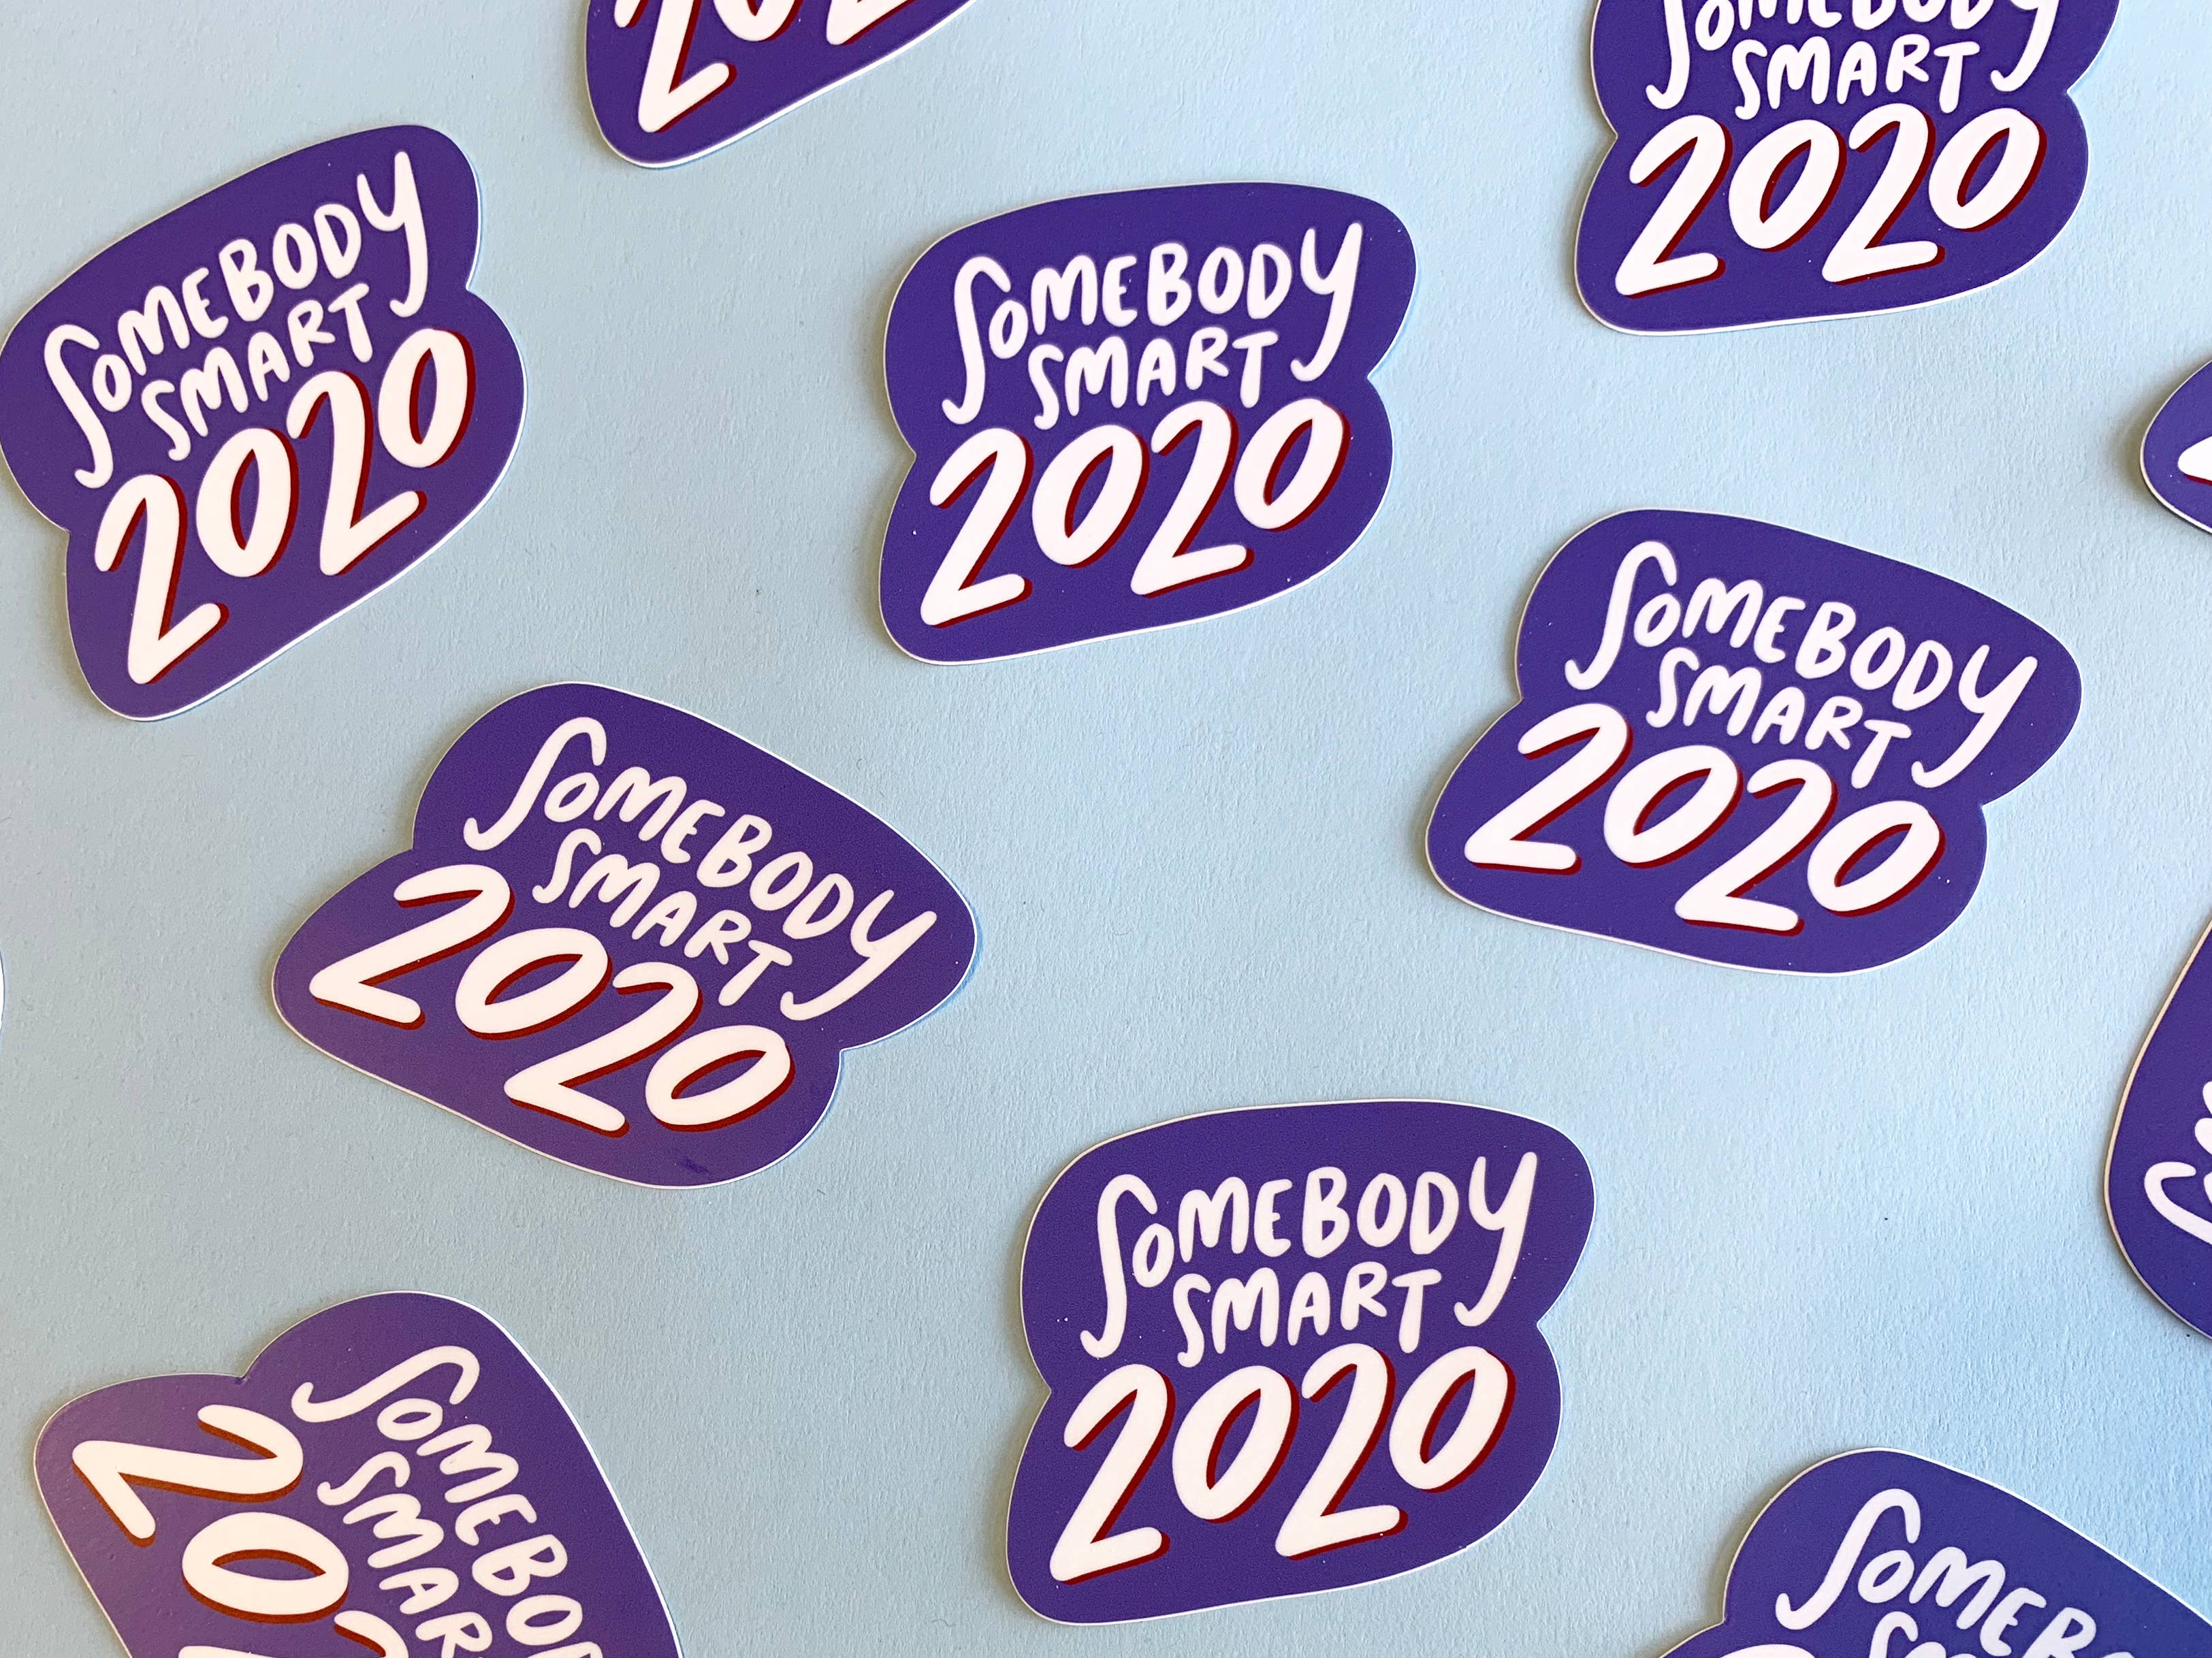 Somebody smart 2020 sticker